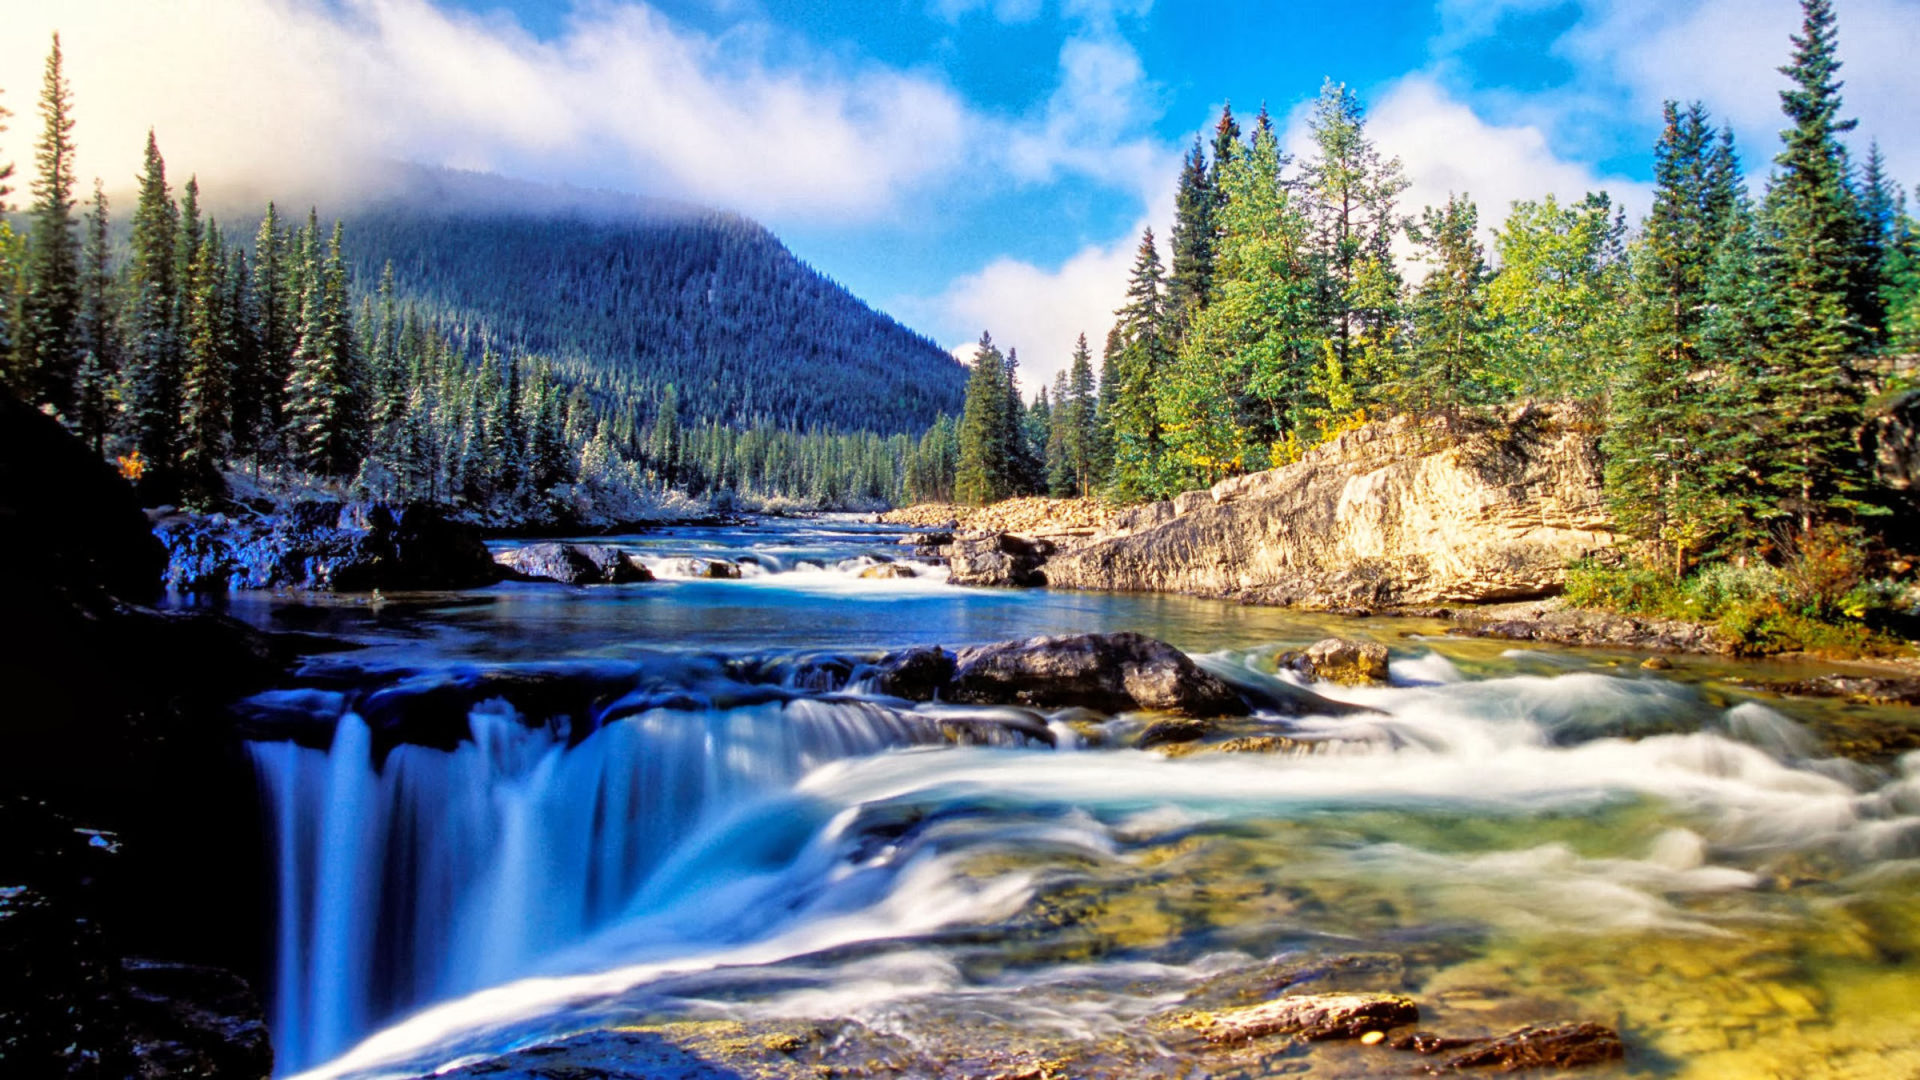 Bing Hd Wallpaper Fall Nature Mountain Dense Spruce Forest River Rock Waterfall